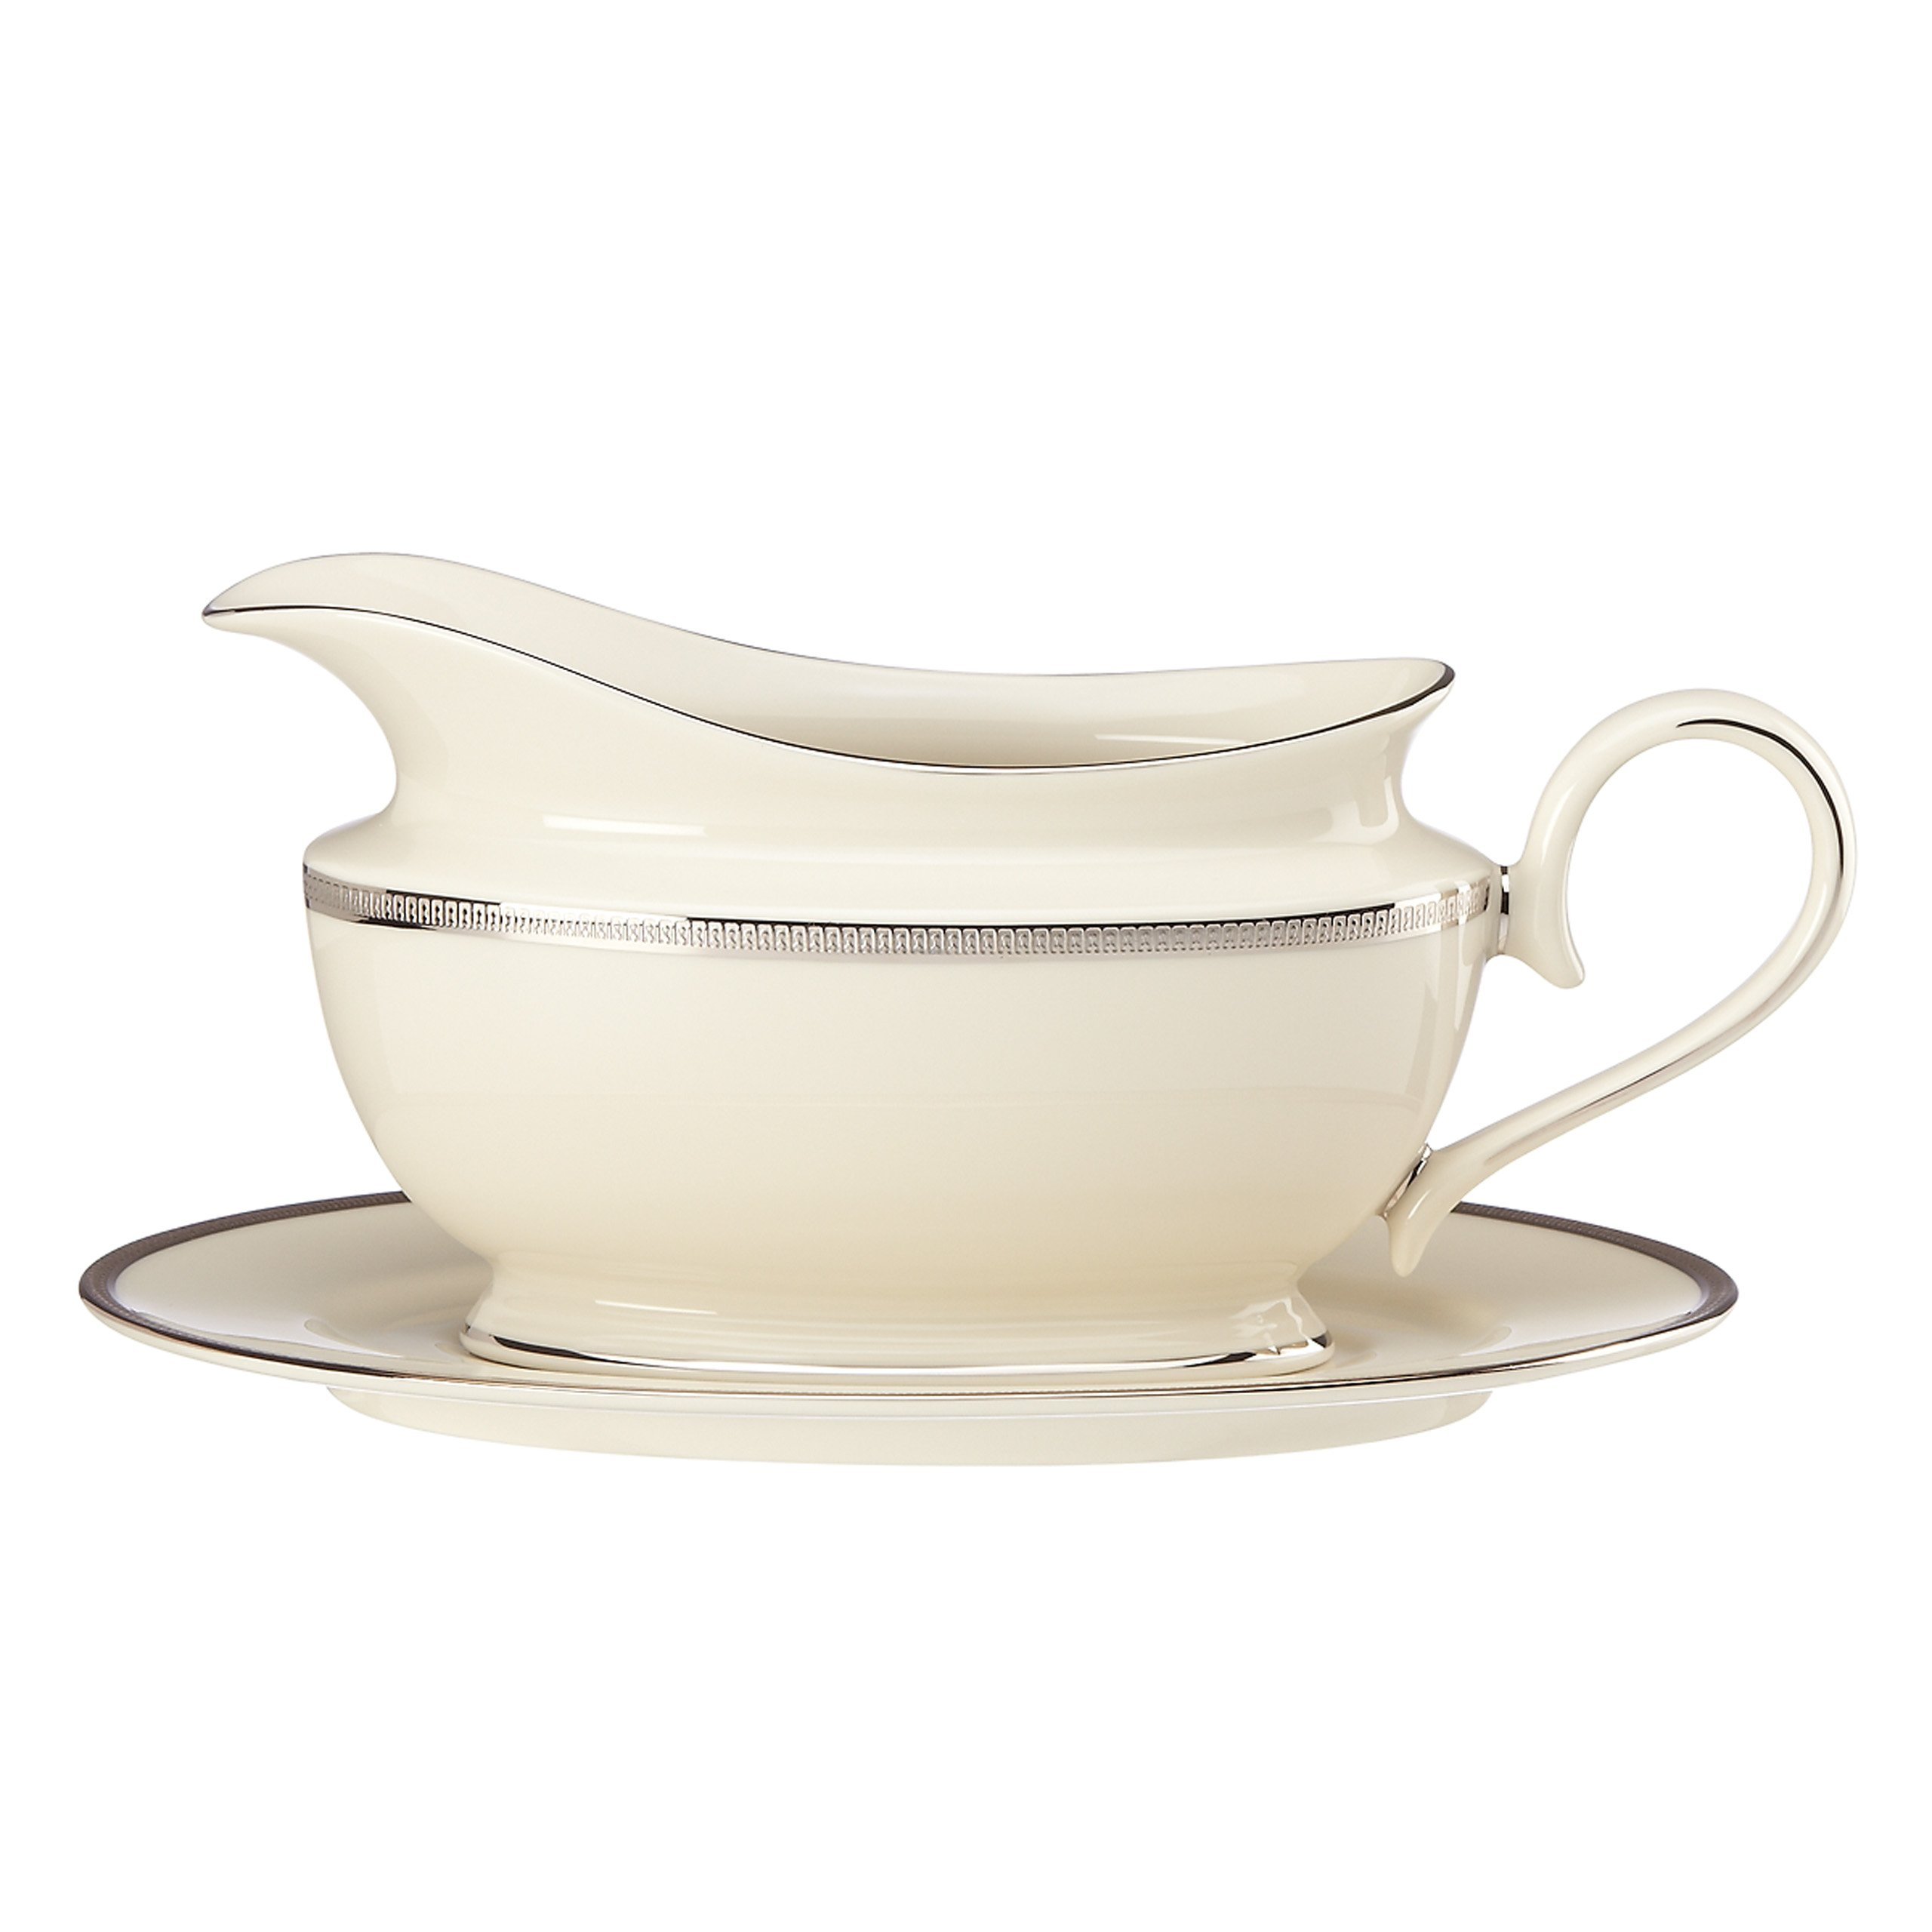 Lenox Tuxedo Platinum Sauce Boat and Stand, Ivory by Lenox (Image #1)